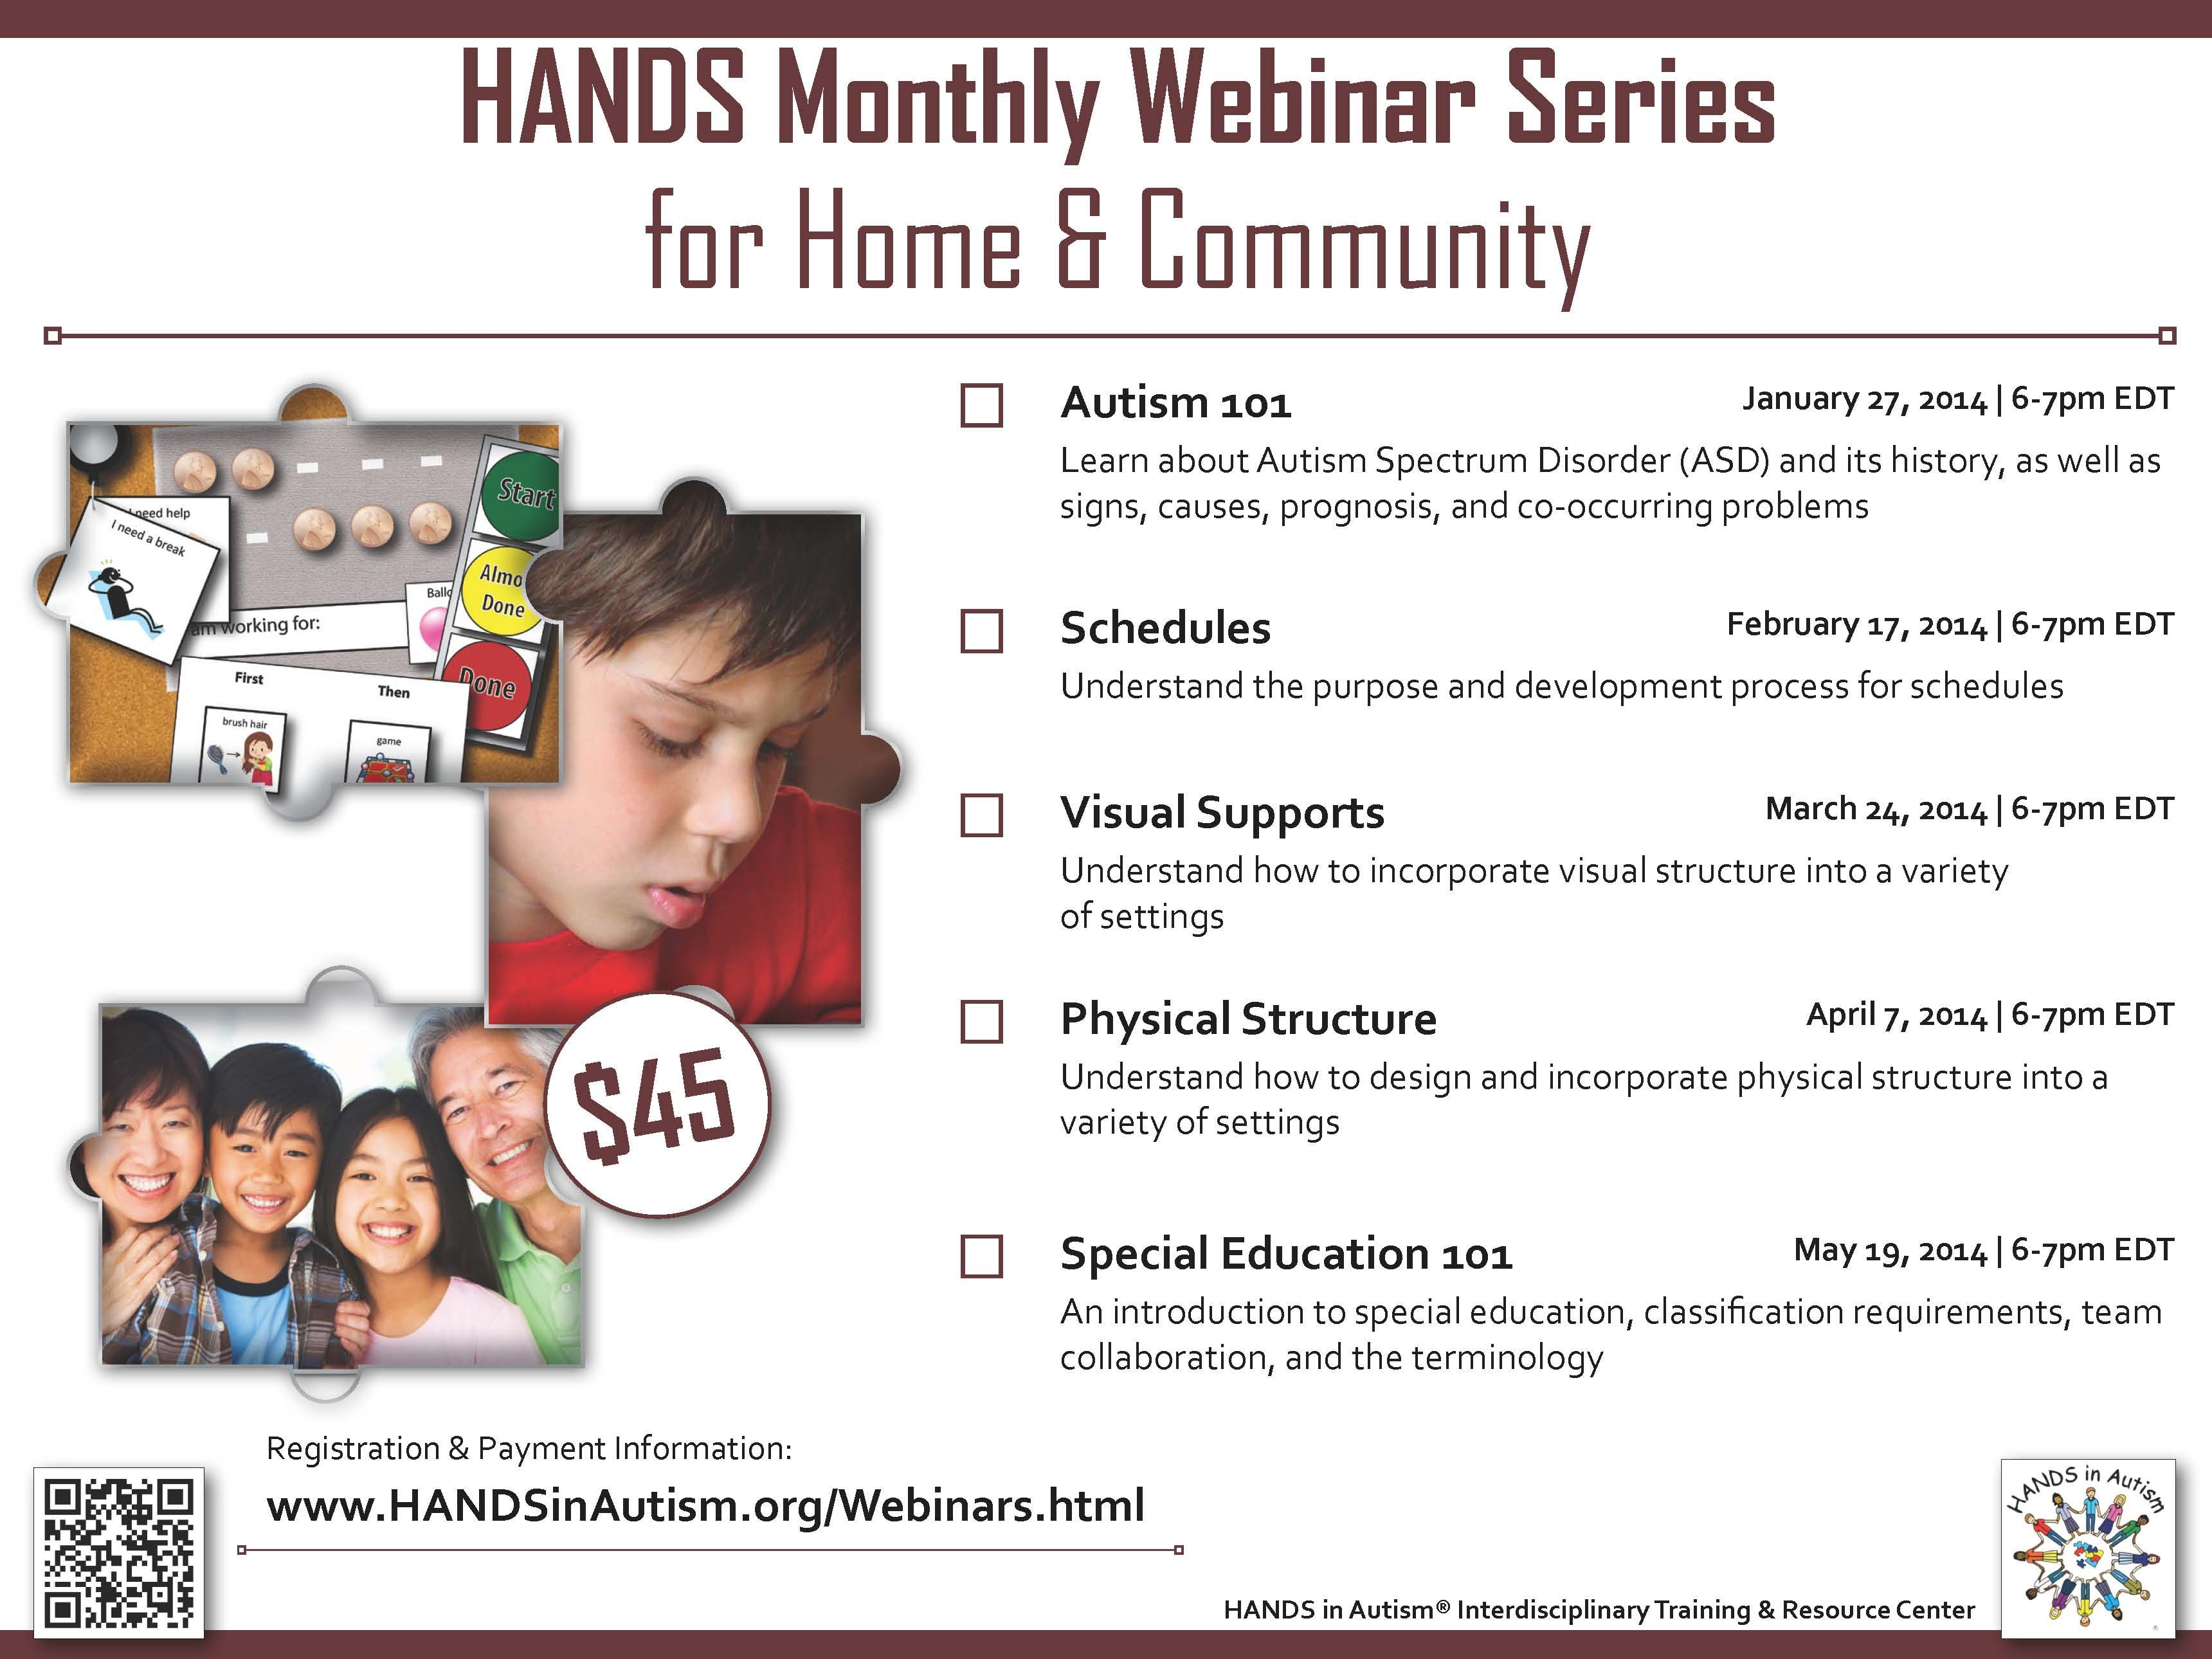 Monthly webinar series for home community available now